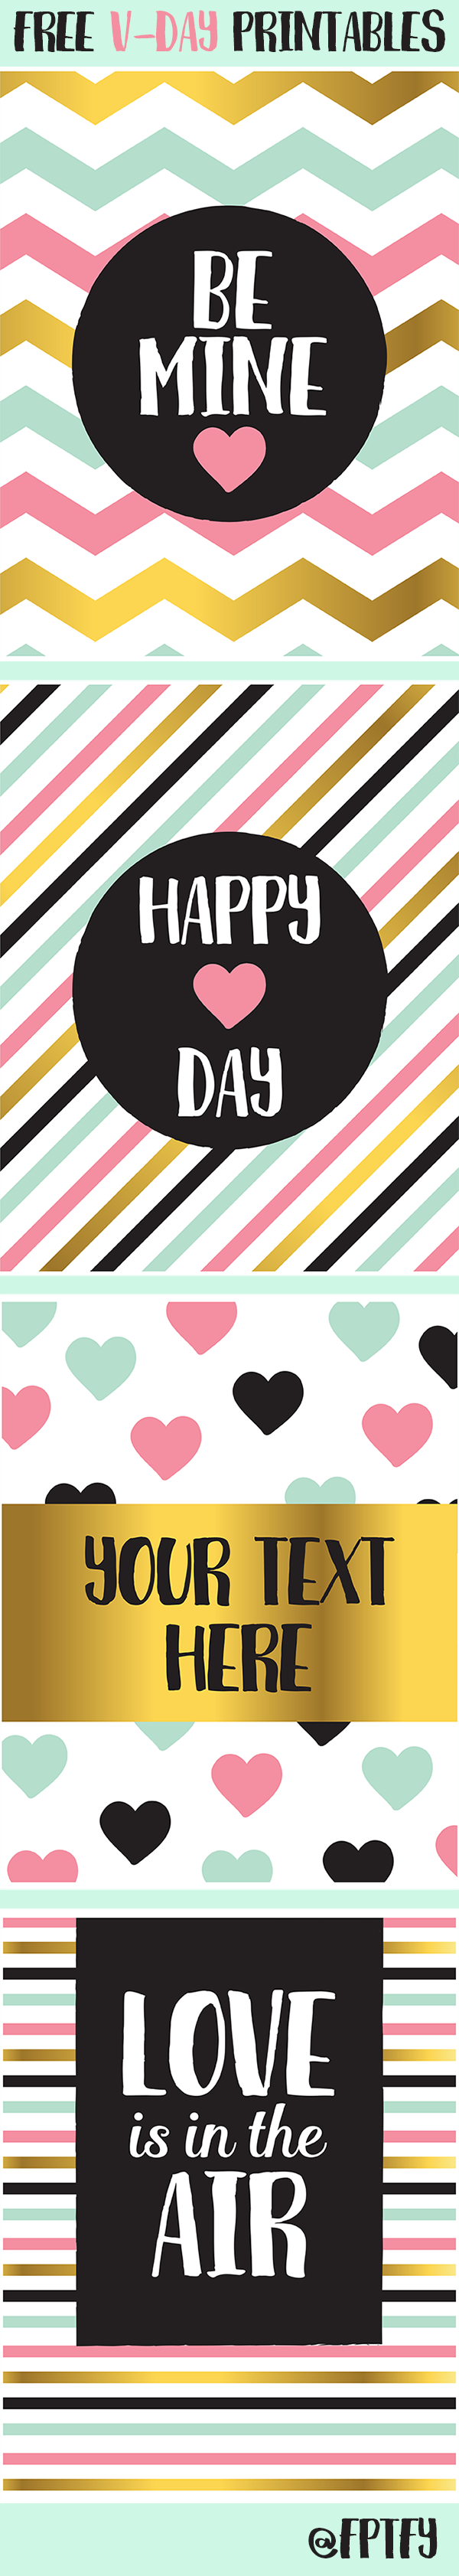 Today's freebies are four lovely 8.5 x 11 Valentines Day images that can be resized to the perfect size you need them to be with any photo editing software! This color combo is one of my favorites because it just makes so happy when Isee it! Each page can be downloaded below: Be Mine     …